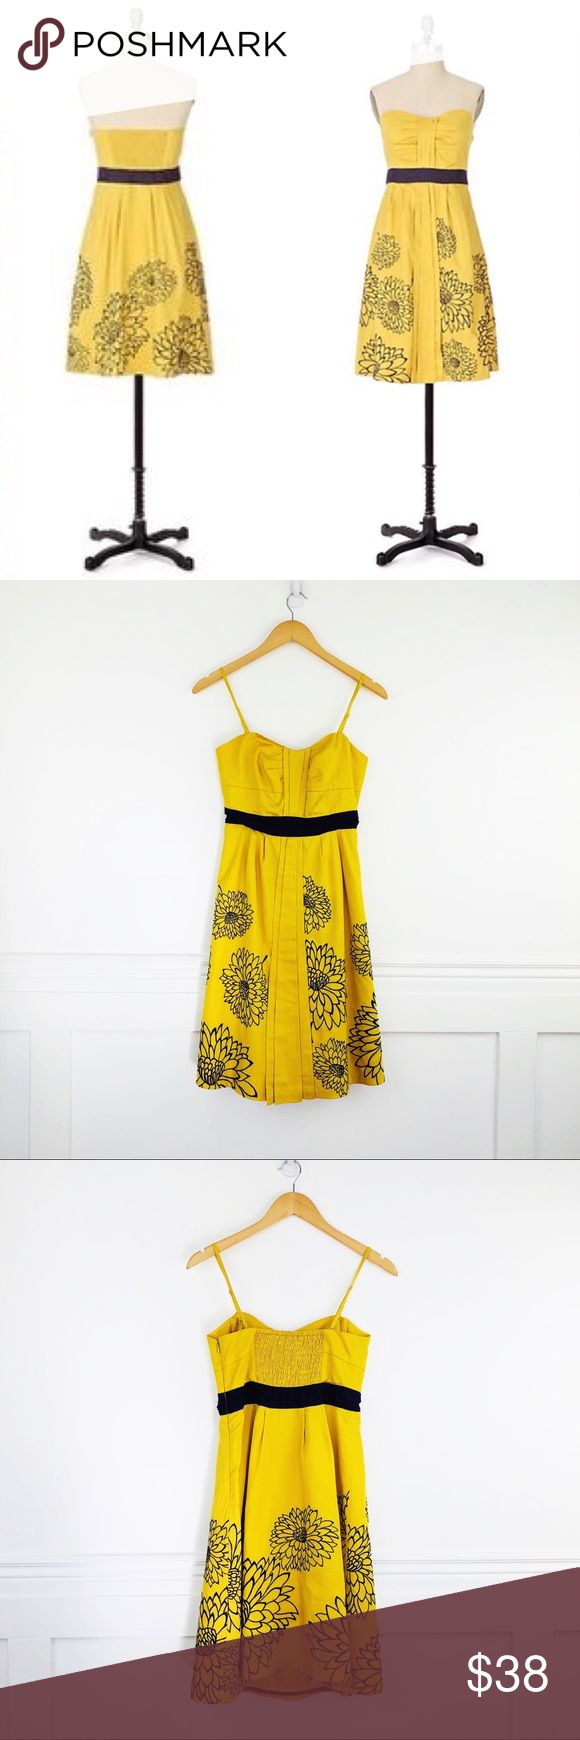 """Anthropologie Floreat Ile Royale dress Floreat Ile Royale Dress   Ocre yellow with eggplant waist and embroidered chrysanthemums on the skirt.  Smocked panel on the back.  Side zip.  Cotton with acetate lining.  Last photo shows a tiny stain on the skirt.   Size 4 Chest 15"""" Waist 14"""" Length 30"""" Anthropologie Dresses"""